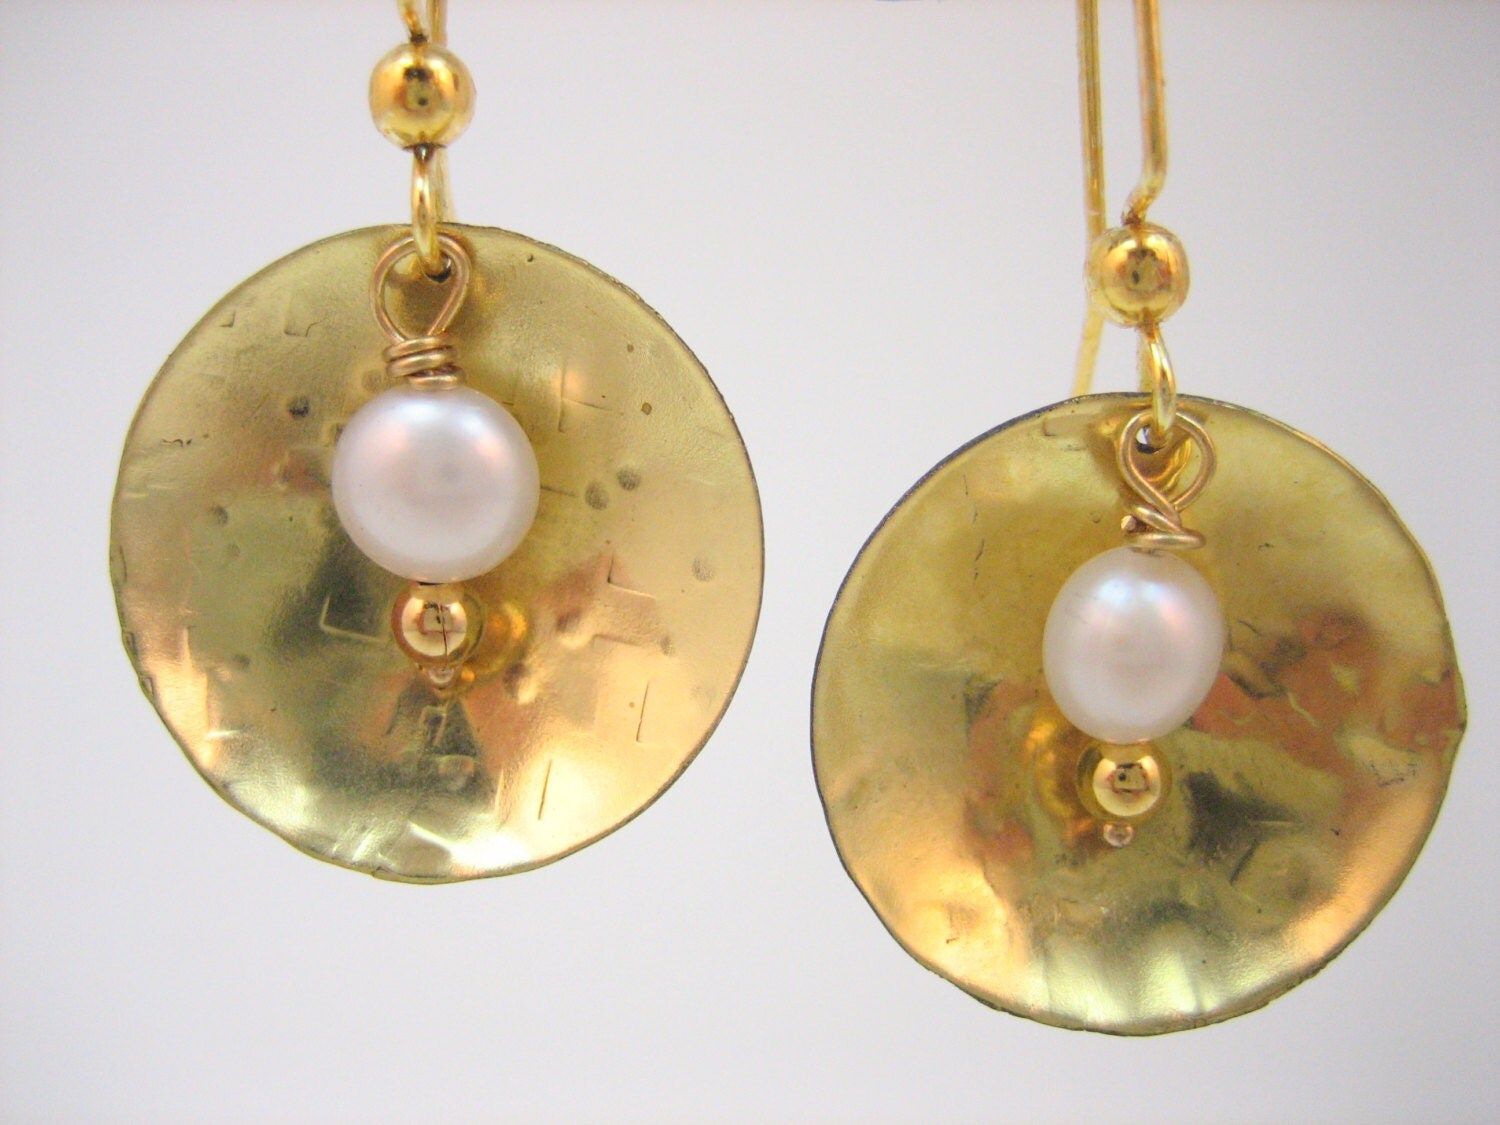 Gold disk earring, hammered jewelry, simple earring, girft for mom, hammered gold earrings with pearls and golden beads